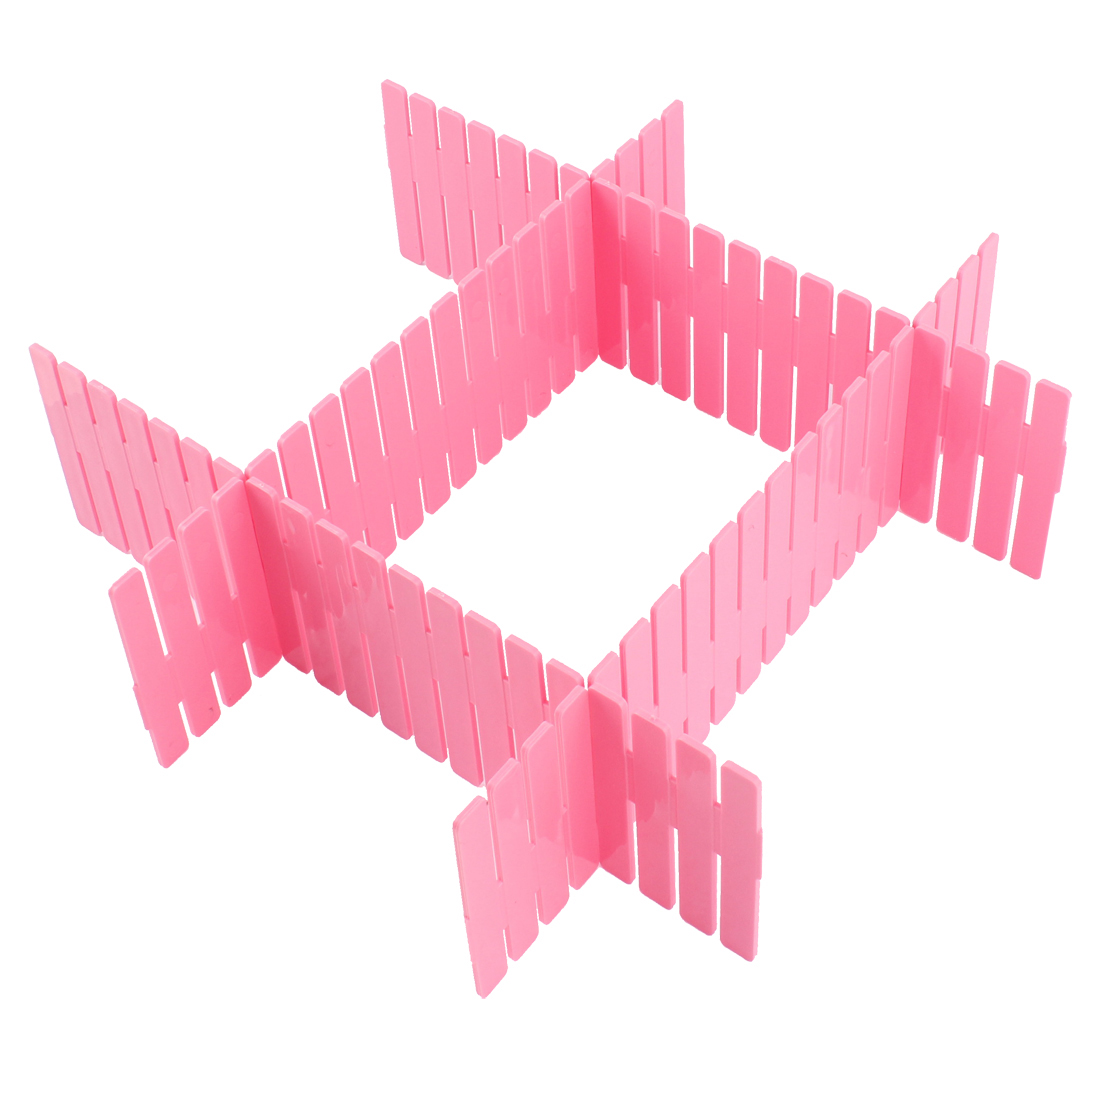 Home Storage Plastic Drawer Closet Grid Divider Organizer Container 4pcs Pink